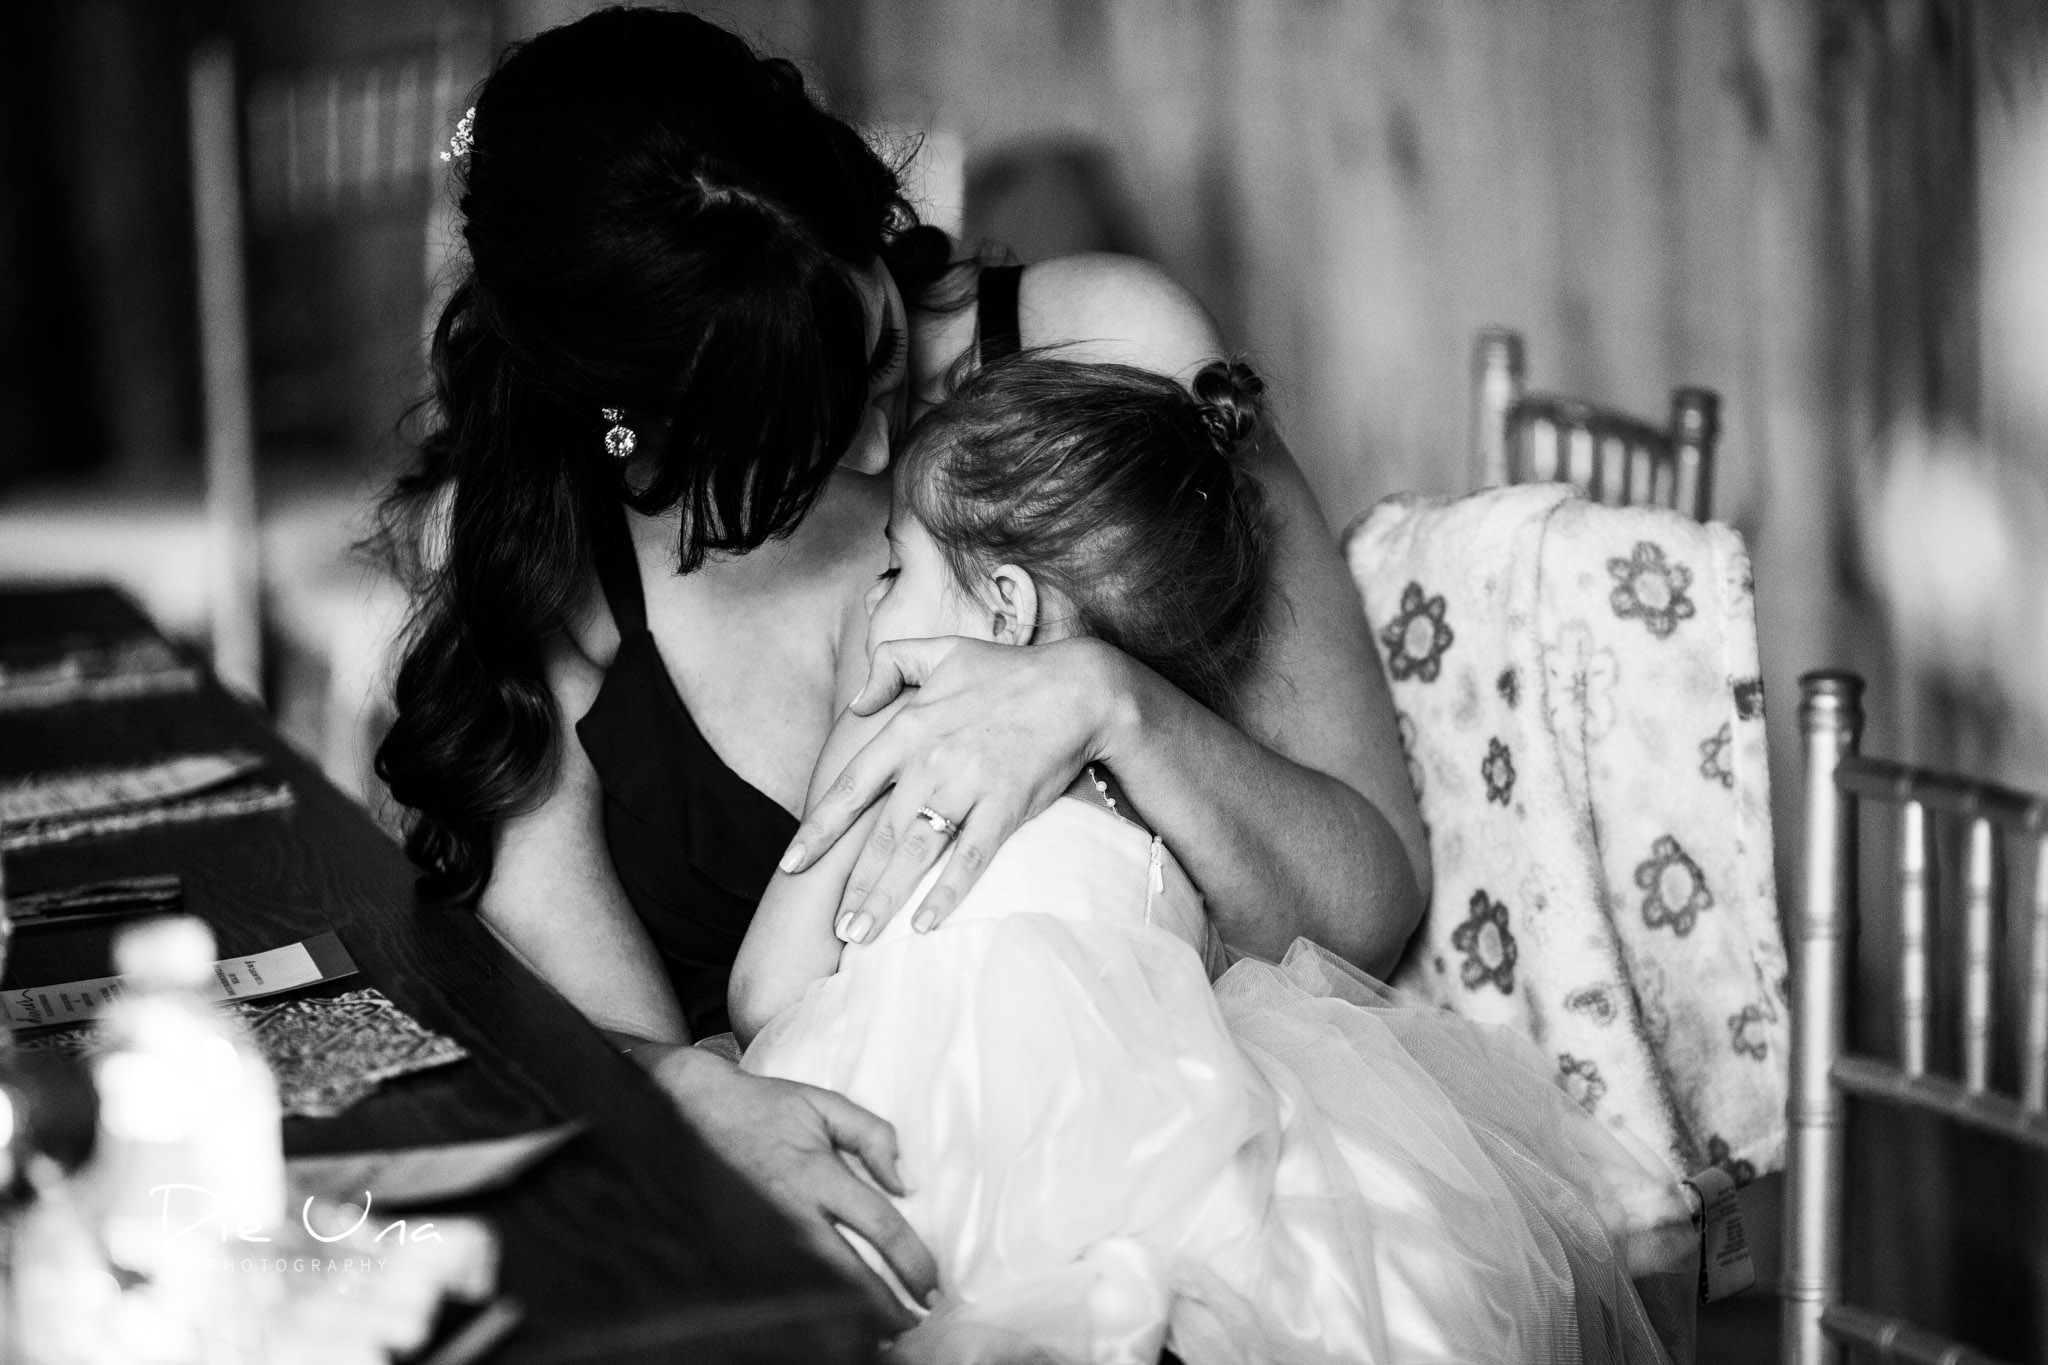 flower girl being hugged by her mom during wedding reception black and white wedding photography.jpg